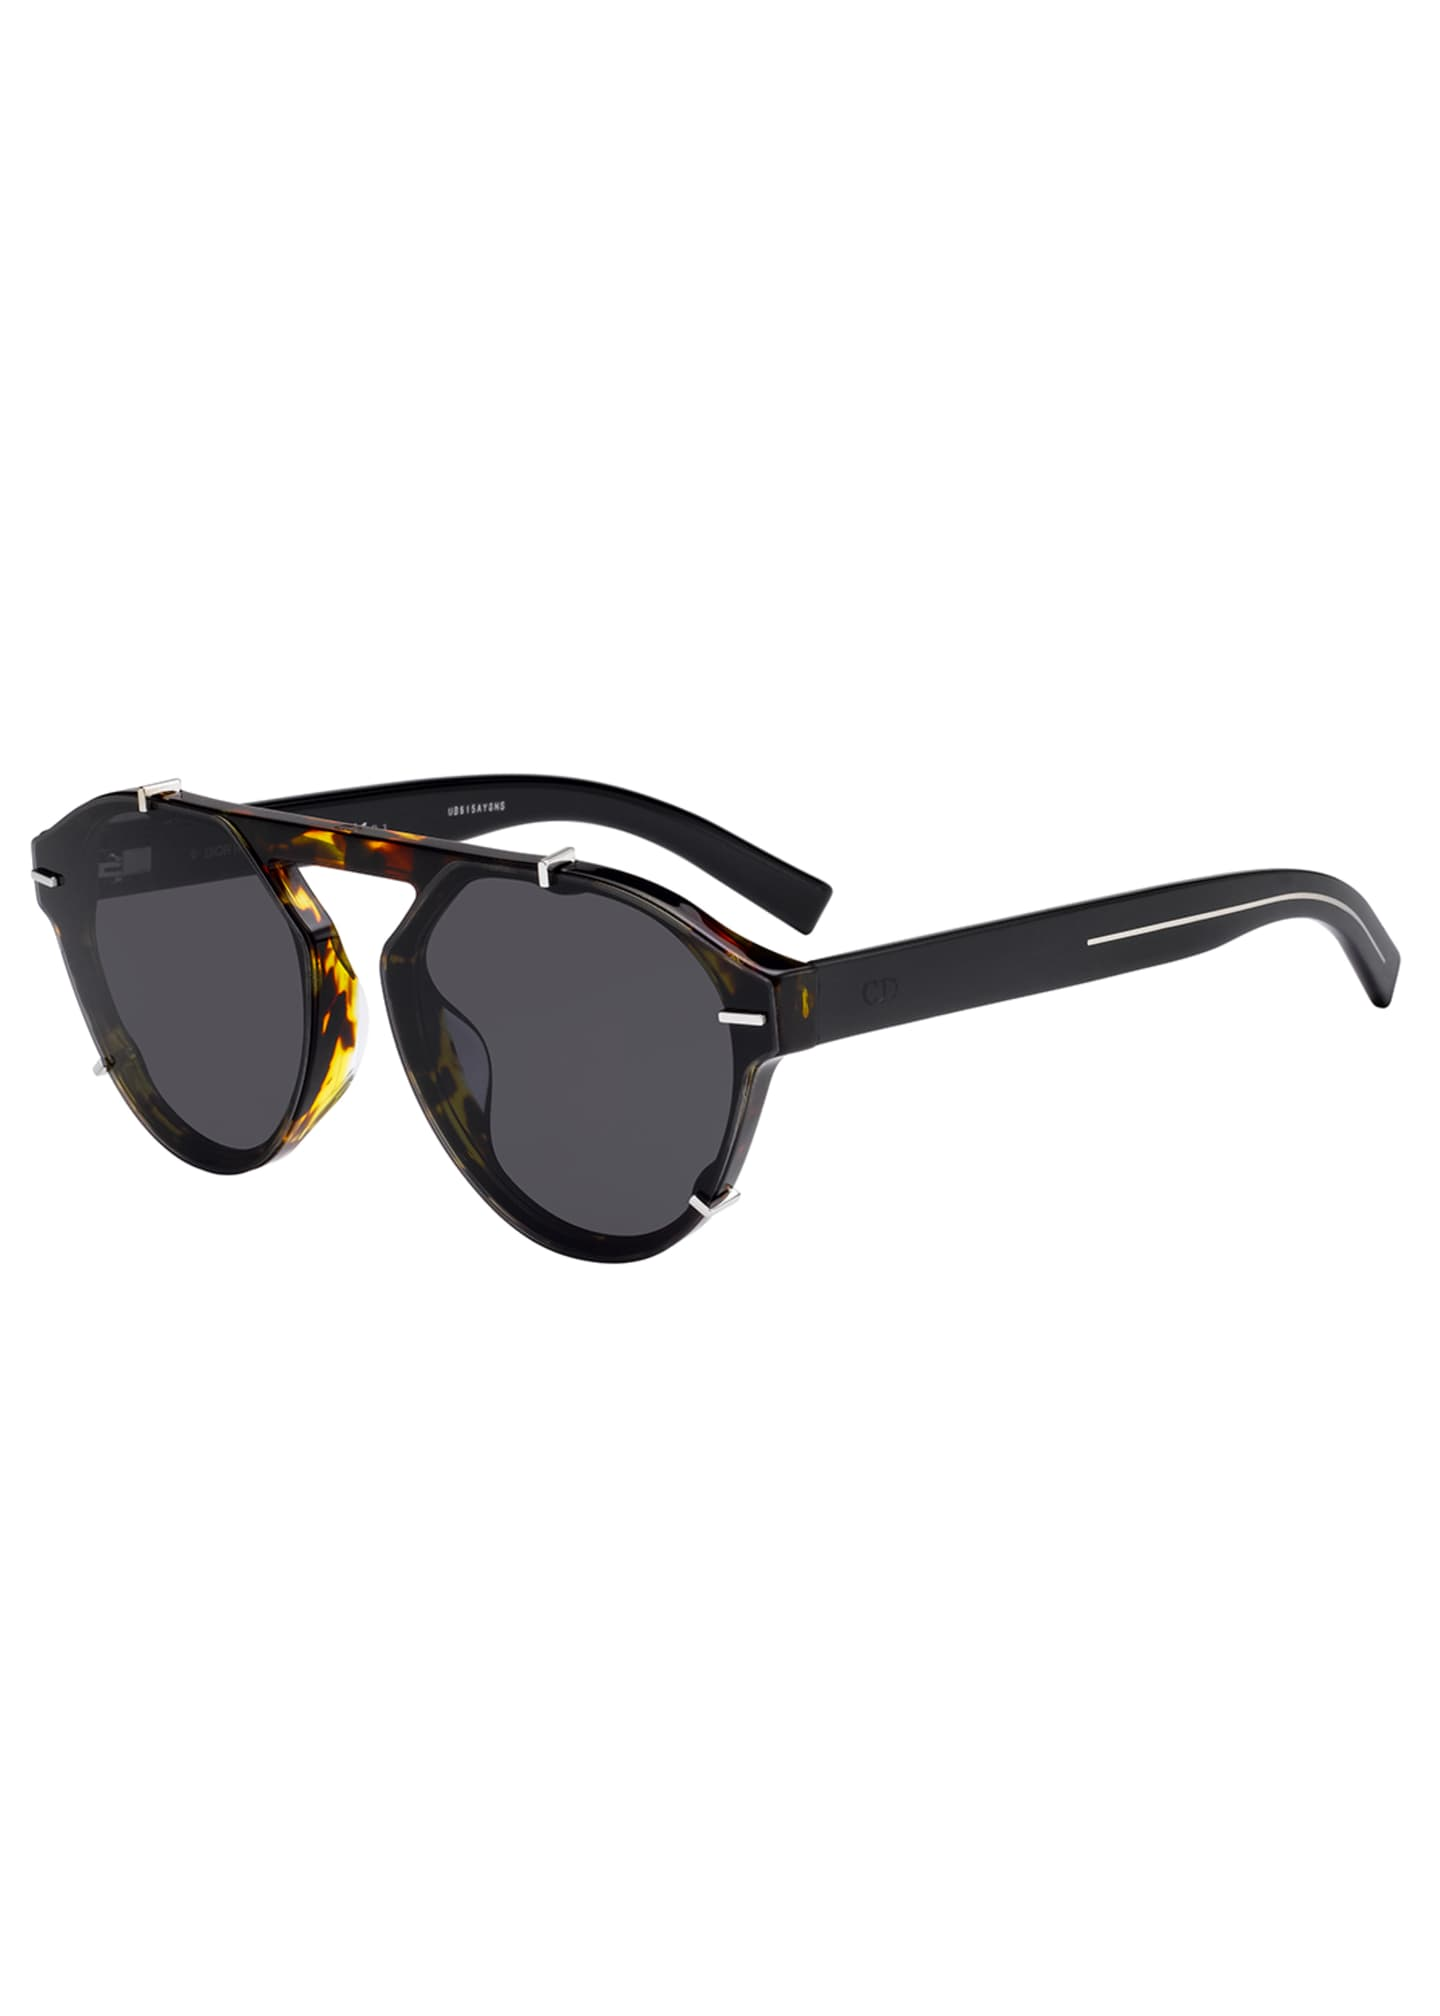 Image 1 of 1: Men's BLACK254FS Round Sunglasses